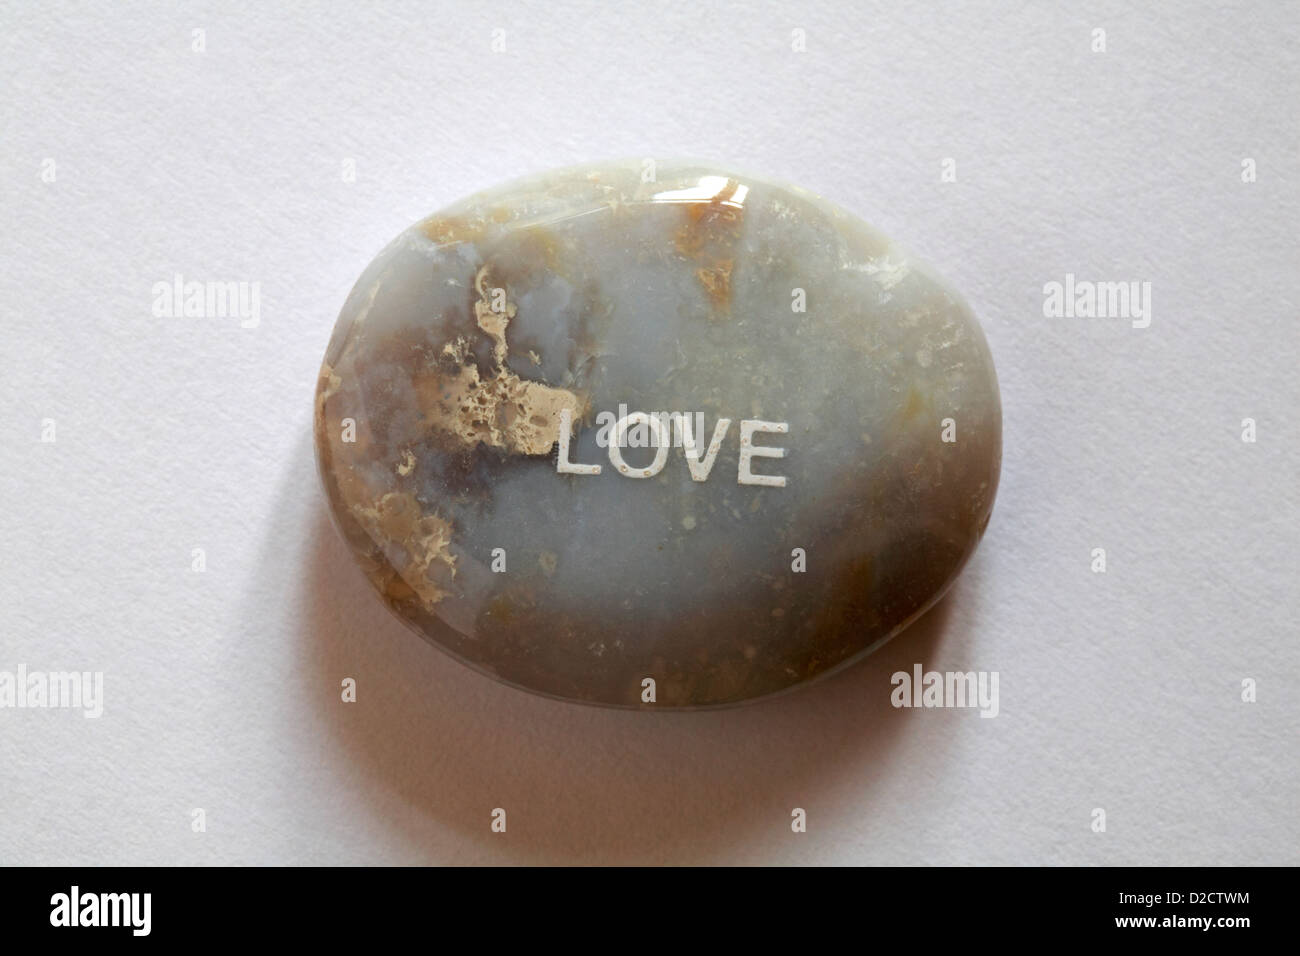 Fair Trade sentiment pebbles - Love pebble isolated on white background - Stock Image